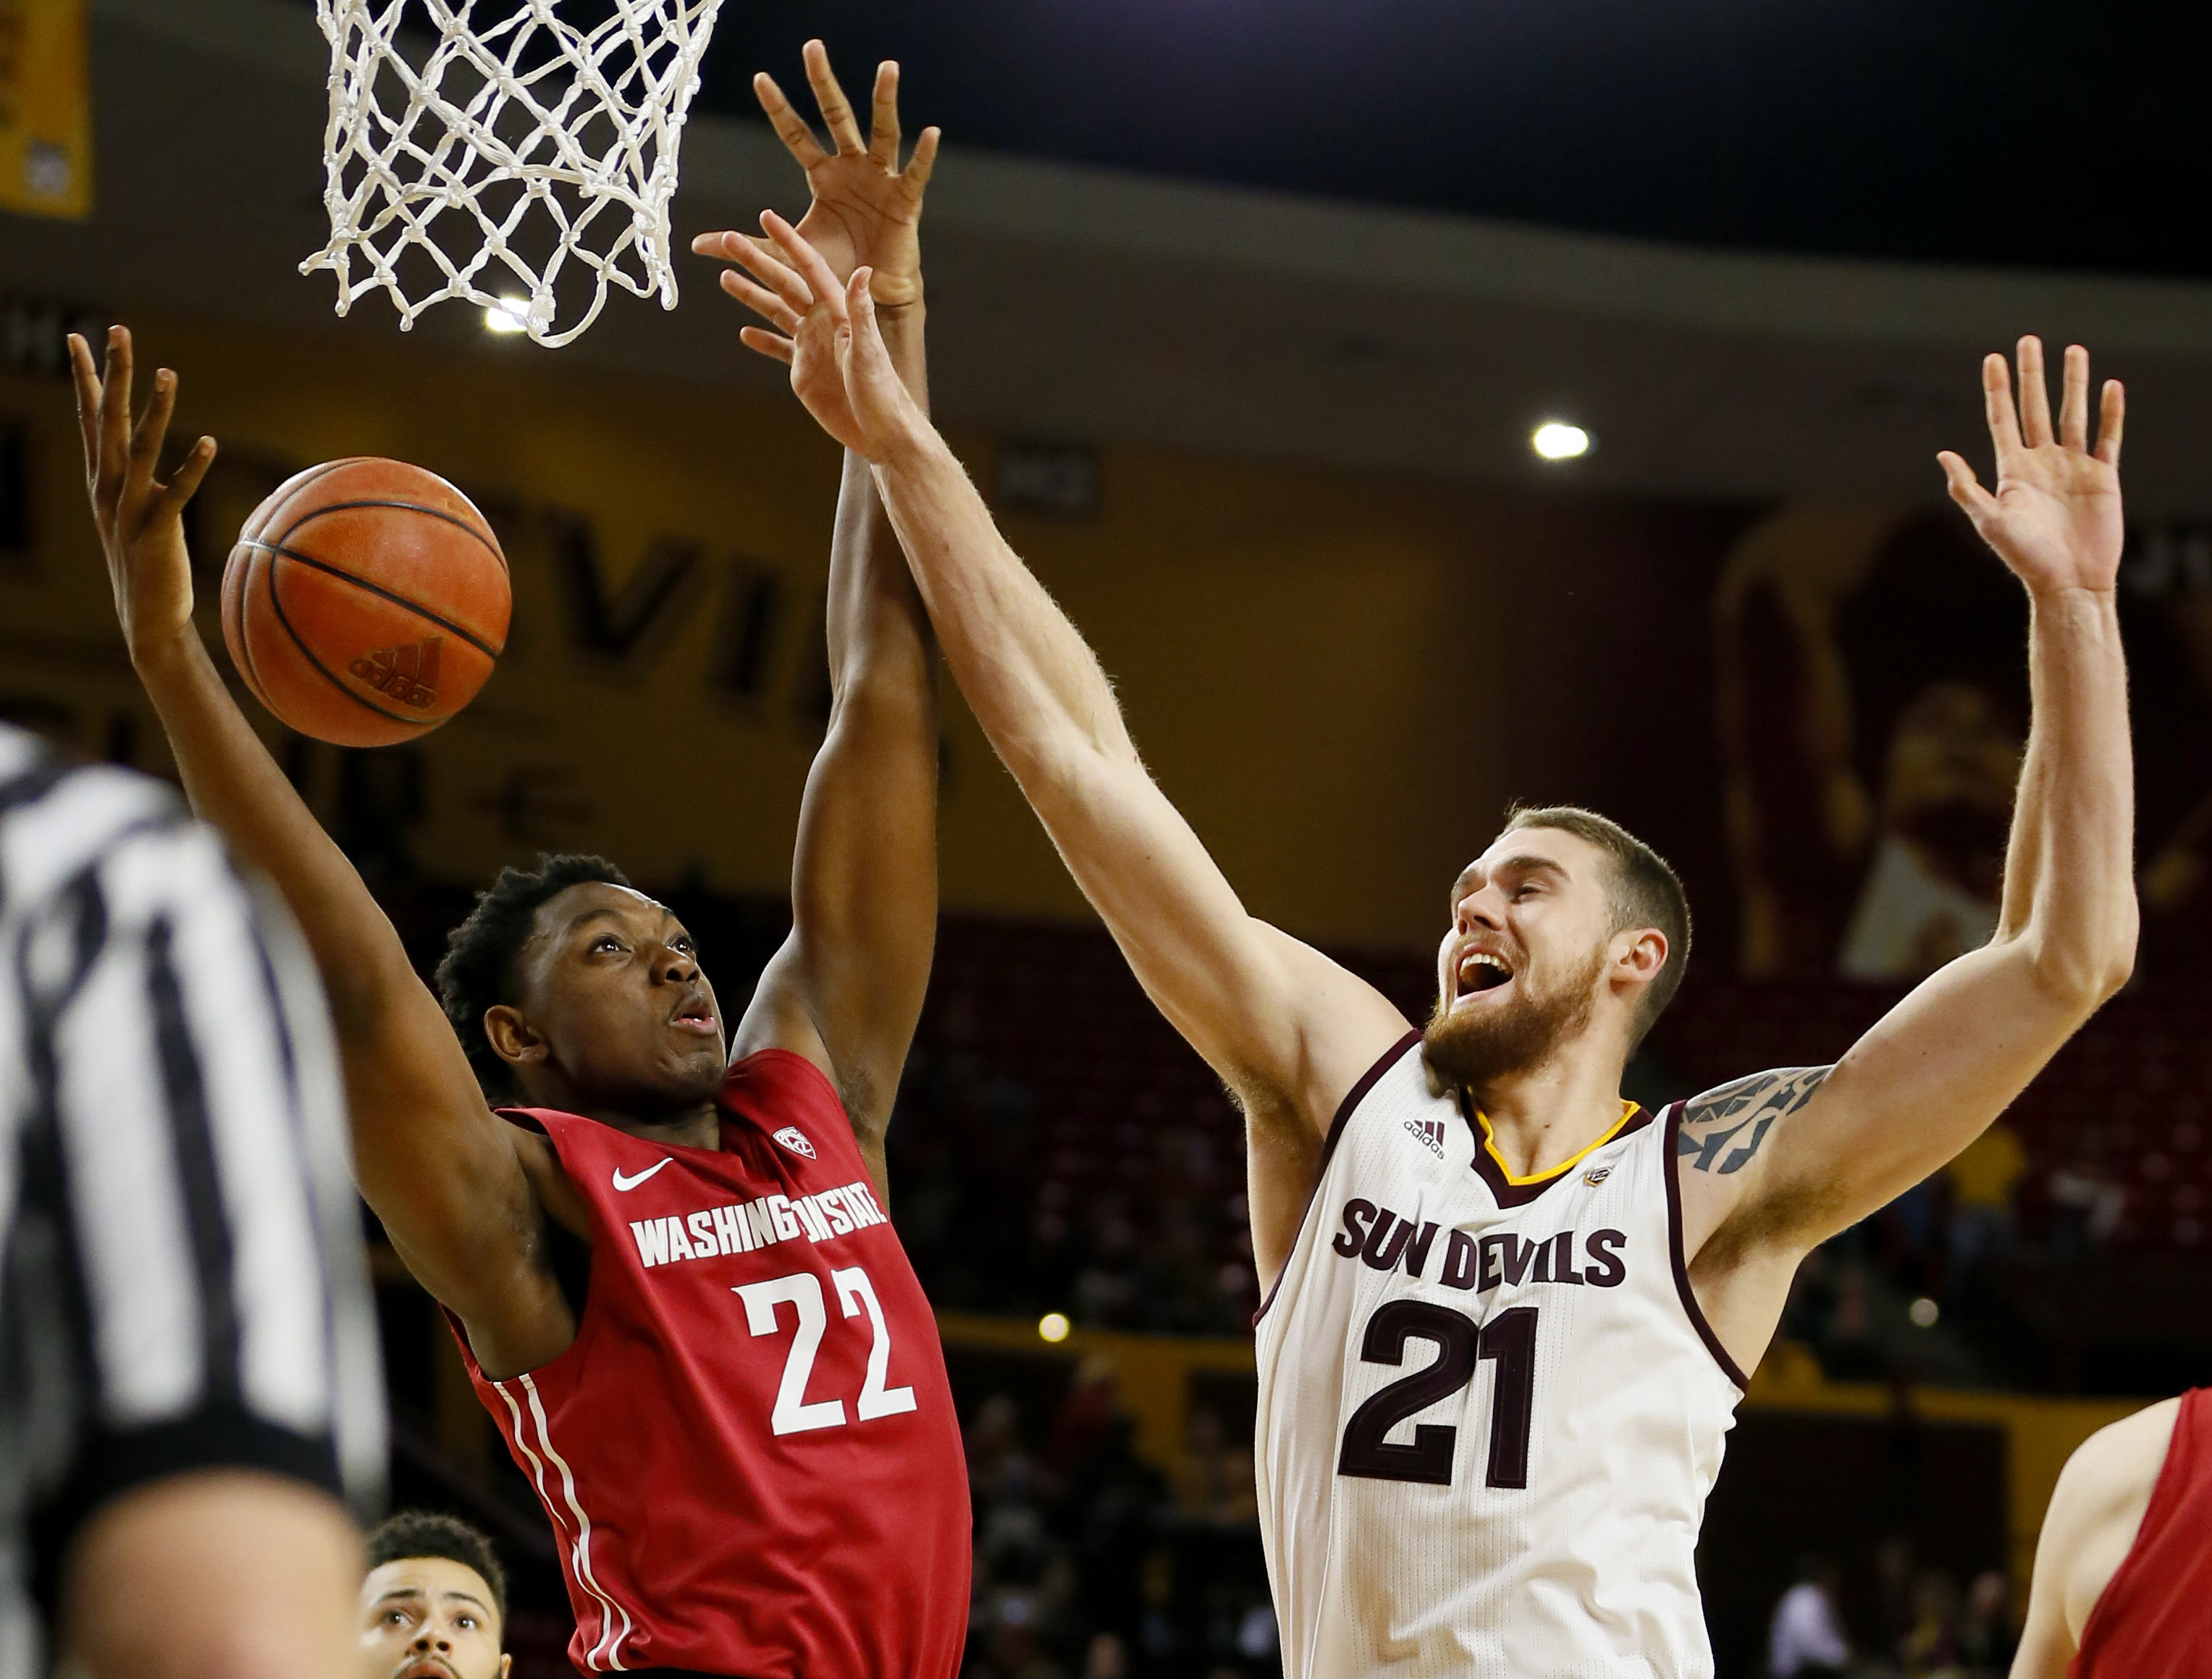 Arizona State forward Eric Jacobsen, right, and Washington State forward Robert Franks reach for a rebound during the second half of an NCAA college basketball game, Thursday, Jan. 14, 2016, in Tempe, Ariz. (AP Photo/Matt York)